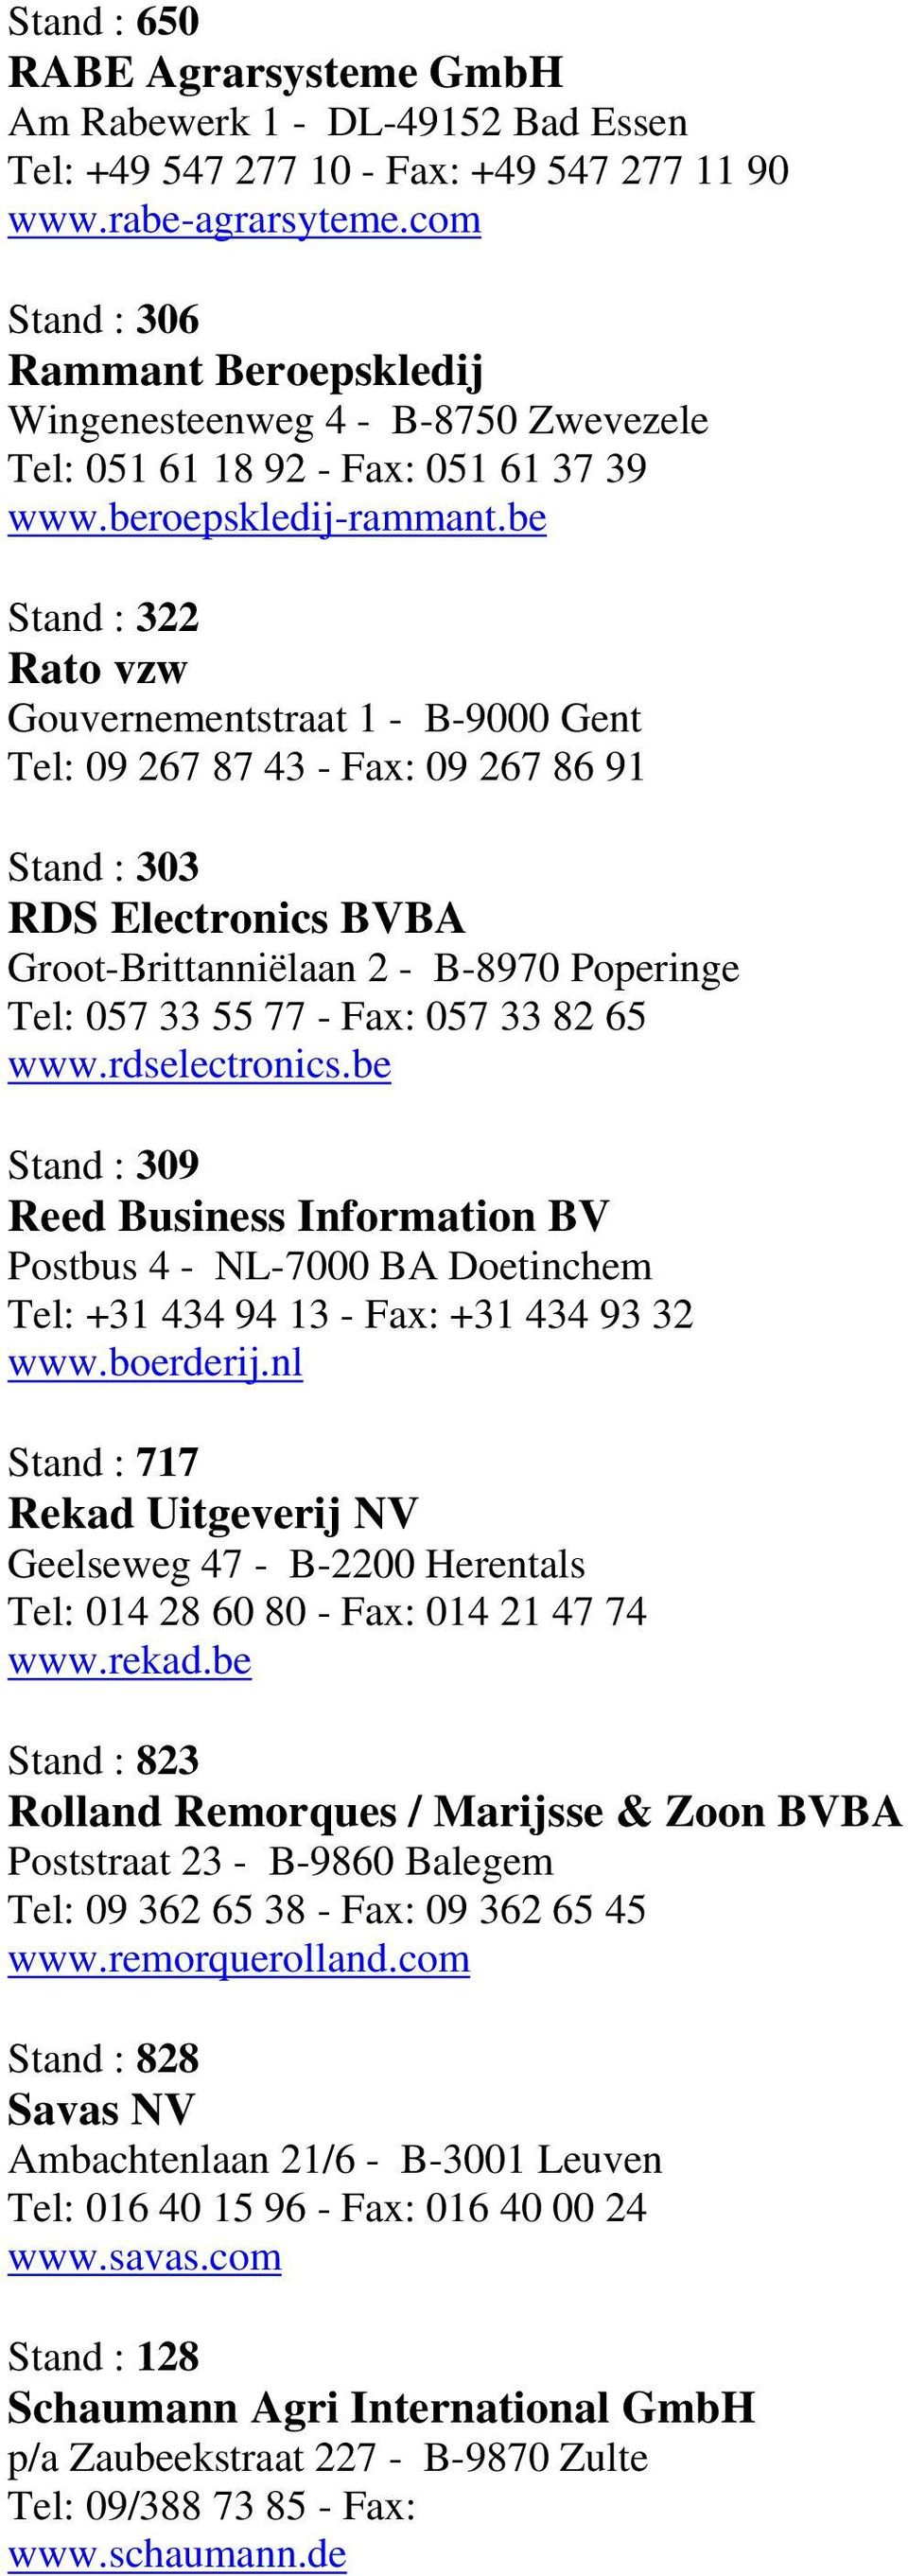 be Stand : 322 Rato vzw Gouvernementstraat 1 - B-9000 Gent Tel: 09 267 87 43 - Fax: 09 267 86 91 Stand : 303 RDS Electronics BVBA Groot-Brittanniëlaan 2 - B-8970 Poperinge Tel: 057 33 55 77 - Fax: